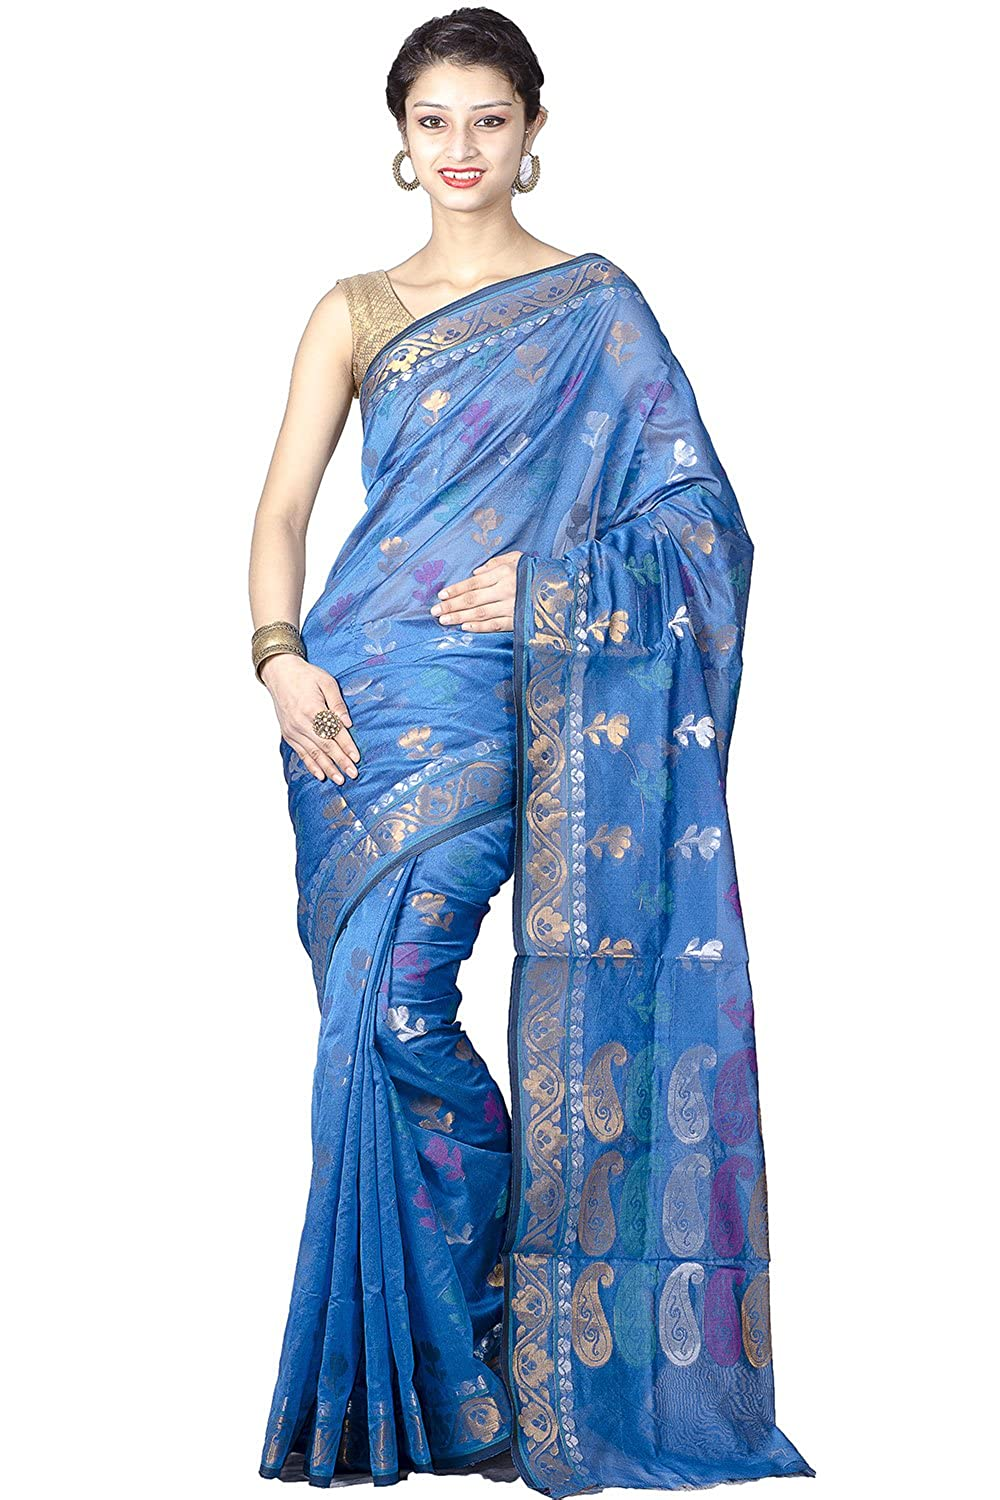 7 Most Attractive Sarees with Affordable Price